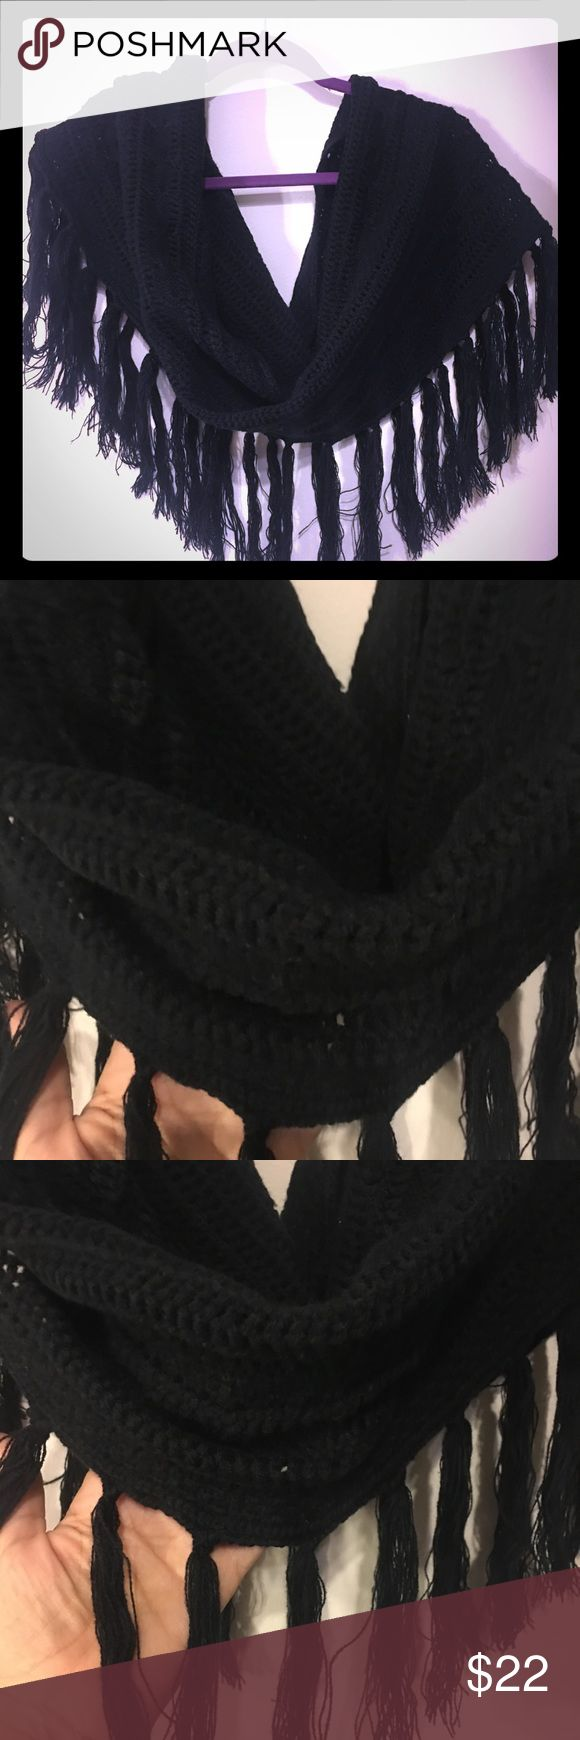 AQUA BRAND INFINITY/SNOOD SCARF AQUA BRAND SCARF BOUGHT IN BLOOMINGDALES NYC  BLACK  100 % ACRYLIC  31 INCHES LONG  12 INCHES WIDE  6 INCH FRINGE  BASIC BLACK INFINITY /SNOOD THATS FAR FROM BASIC. Aqua Accessories Scarves & Wraps